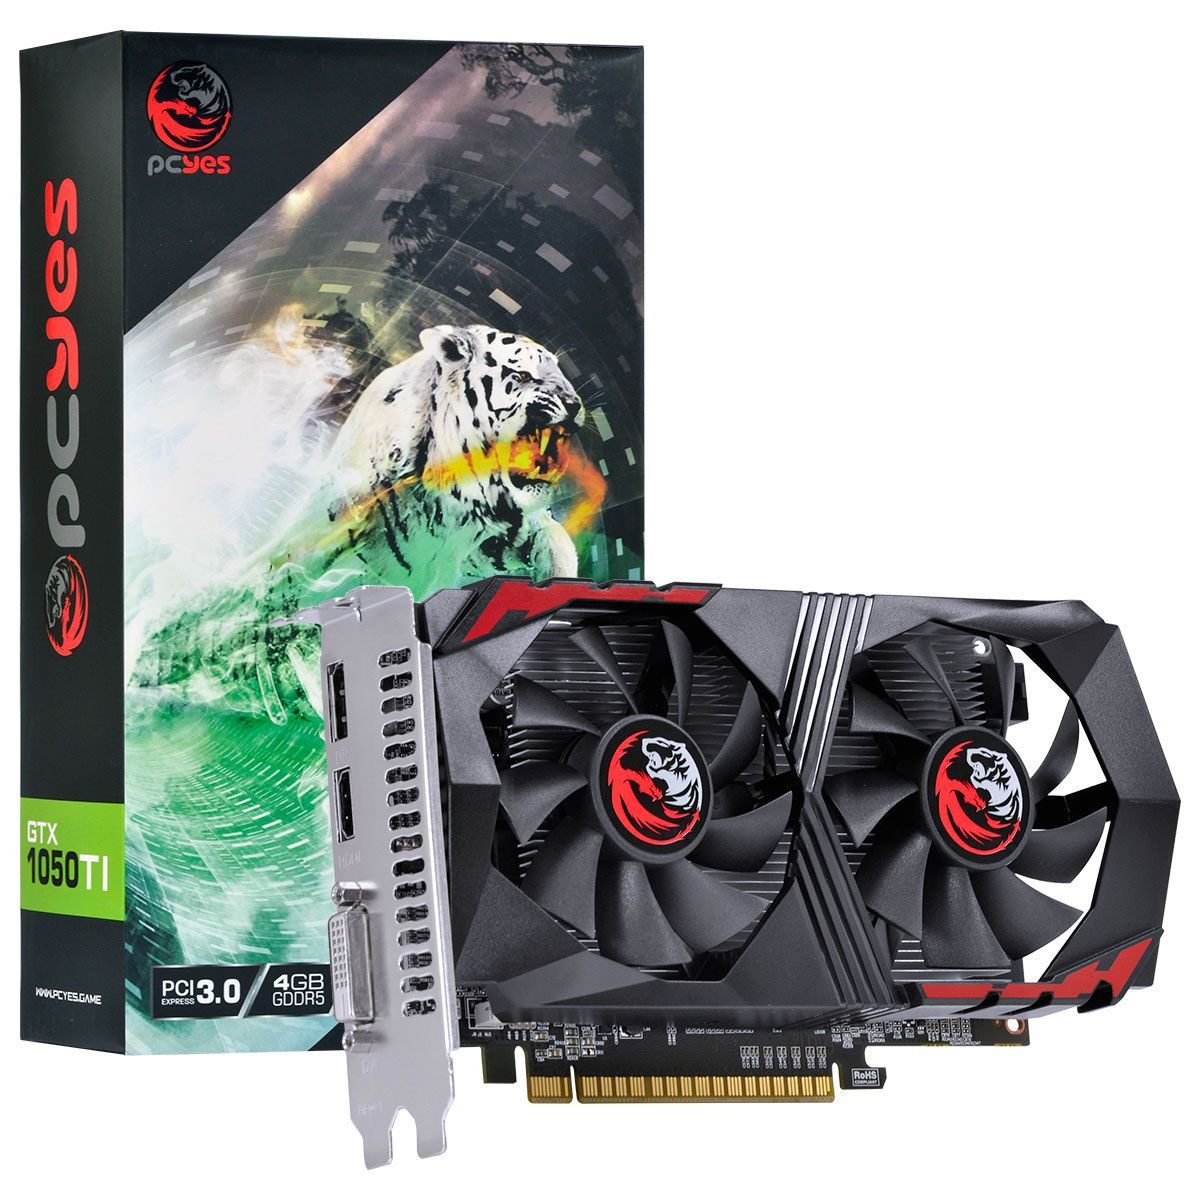 Placa de Vídeo Geforce GTX 1050 Ti 4GB, GDDR5, 128 Bits, Dual Fan PA1050TI12804G5DF - Pcyes